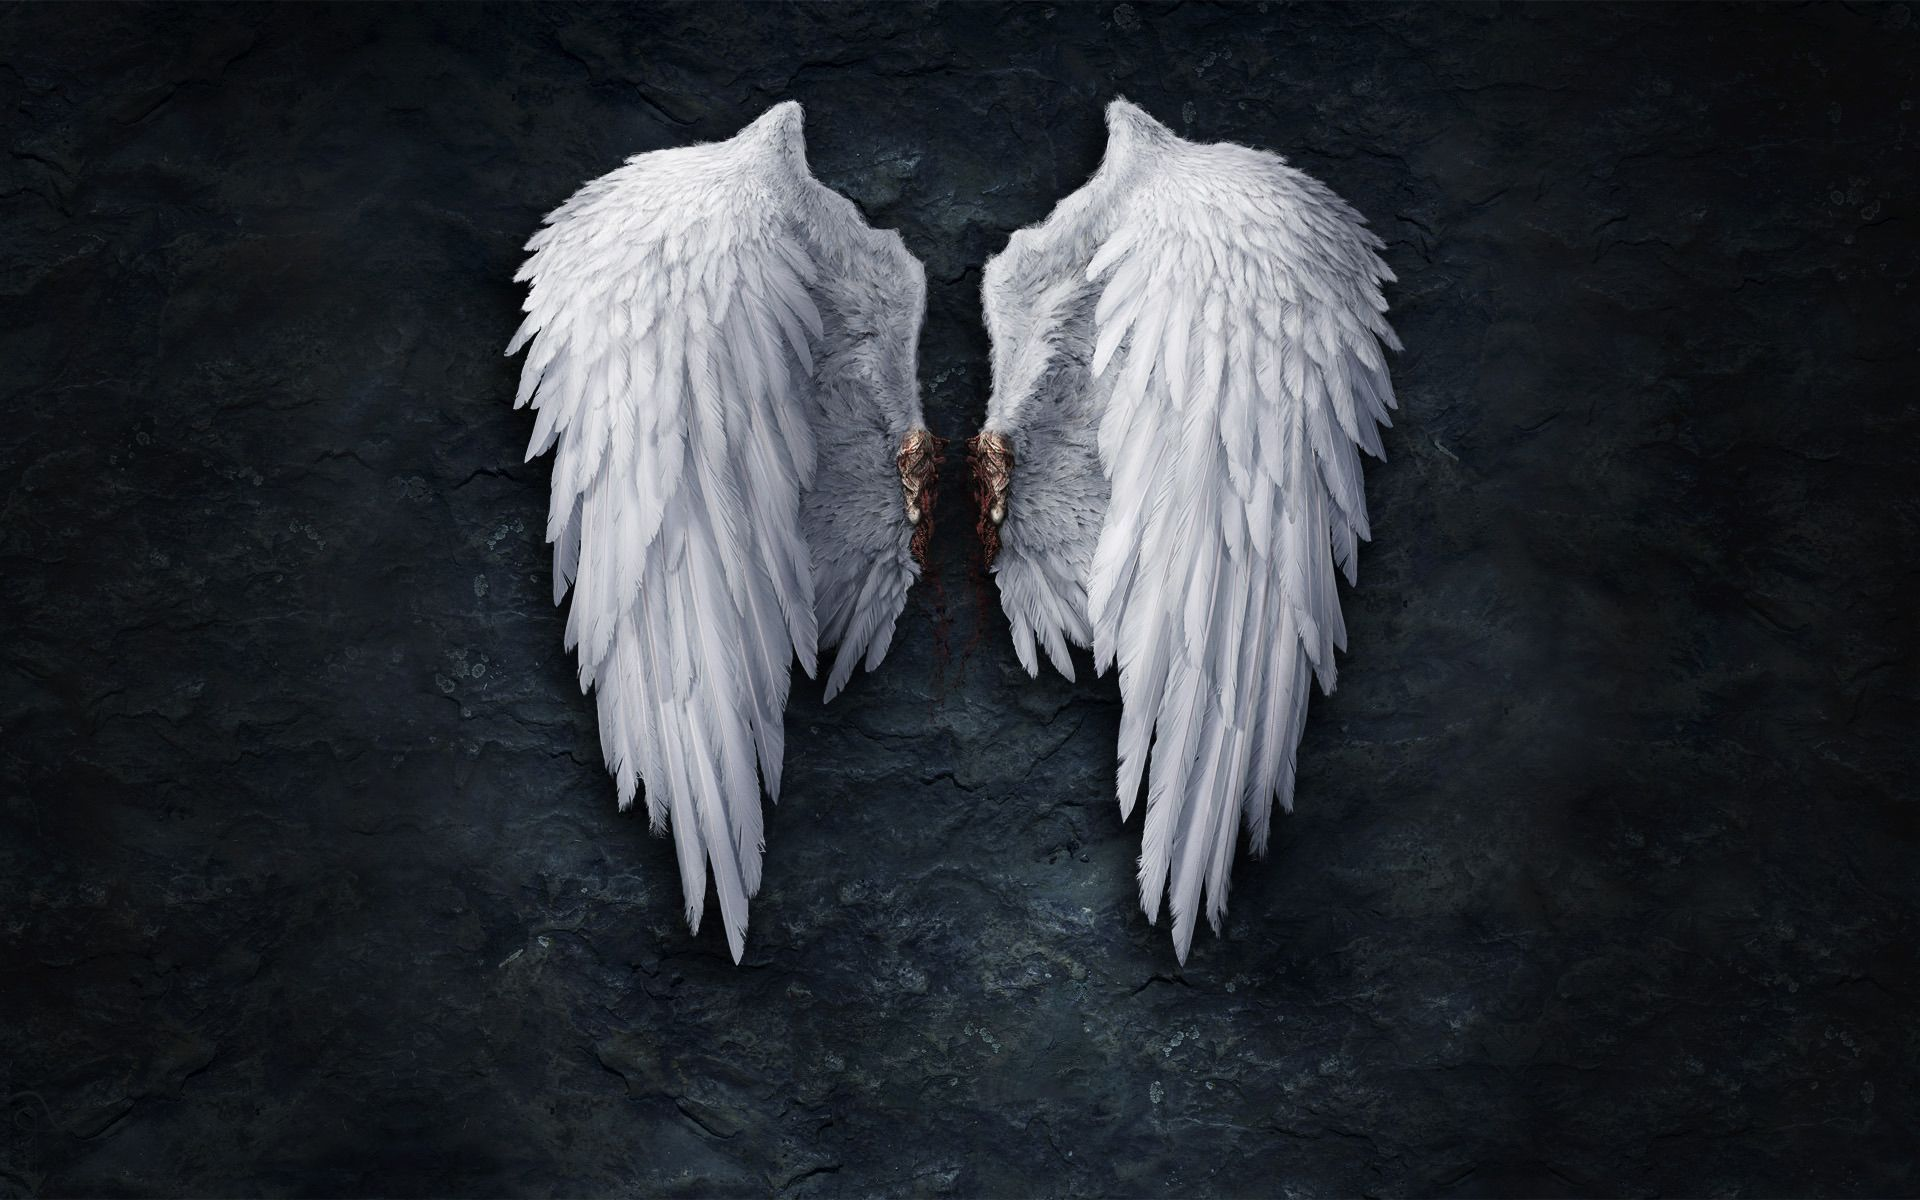 Broken Angel Wings wallpapers HD   421877 1920x1200